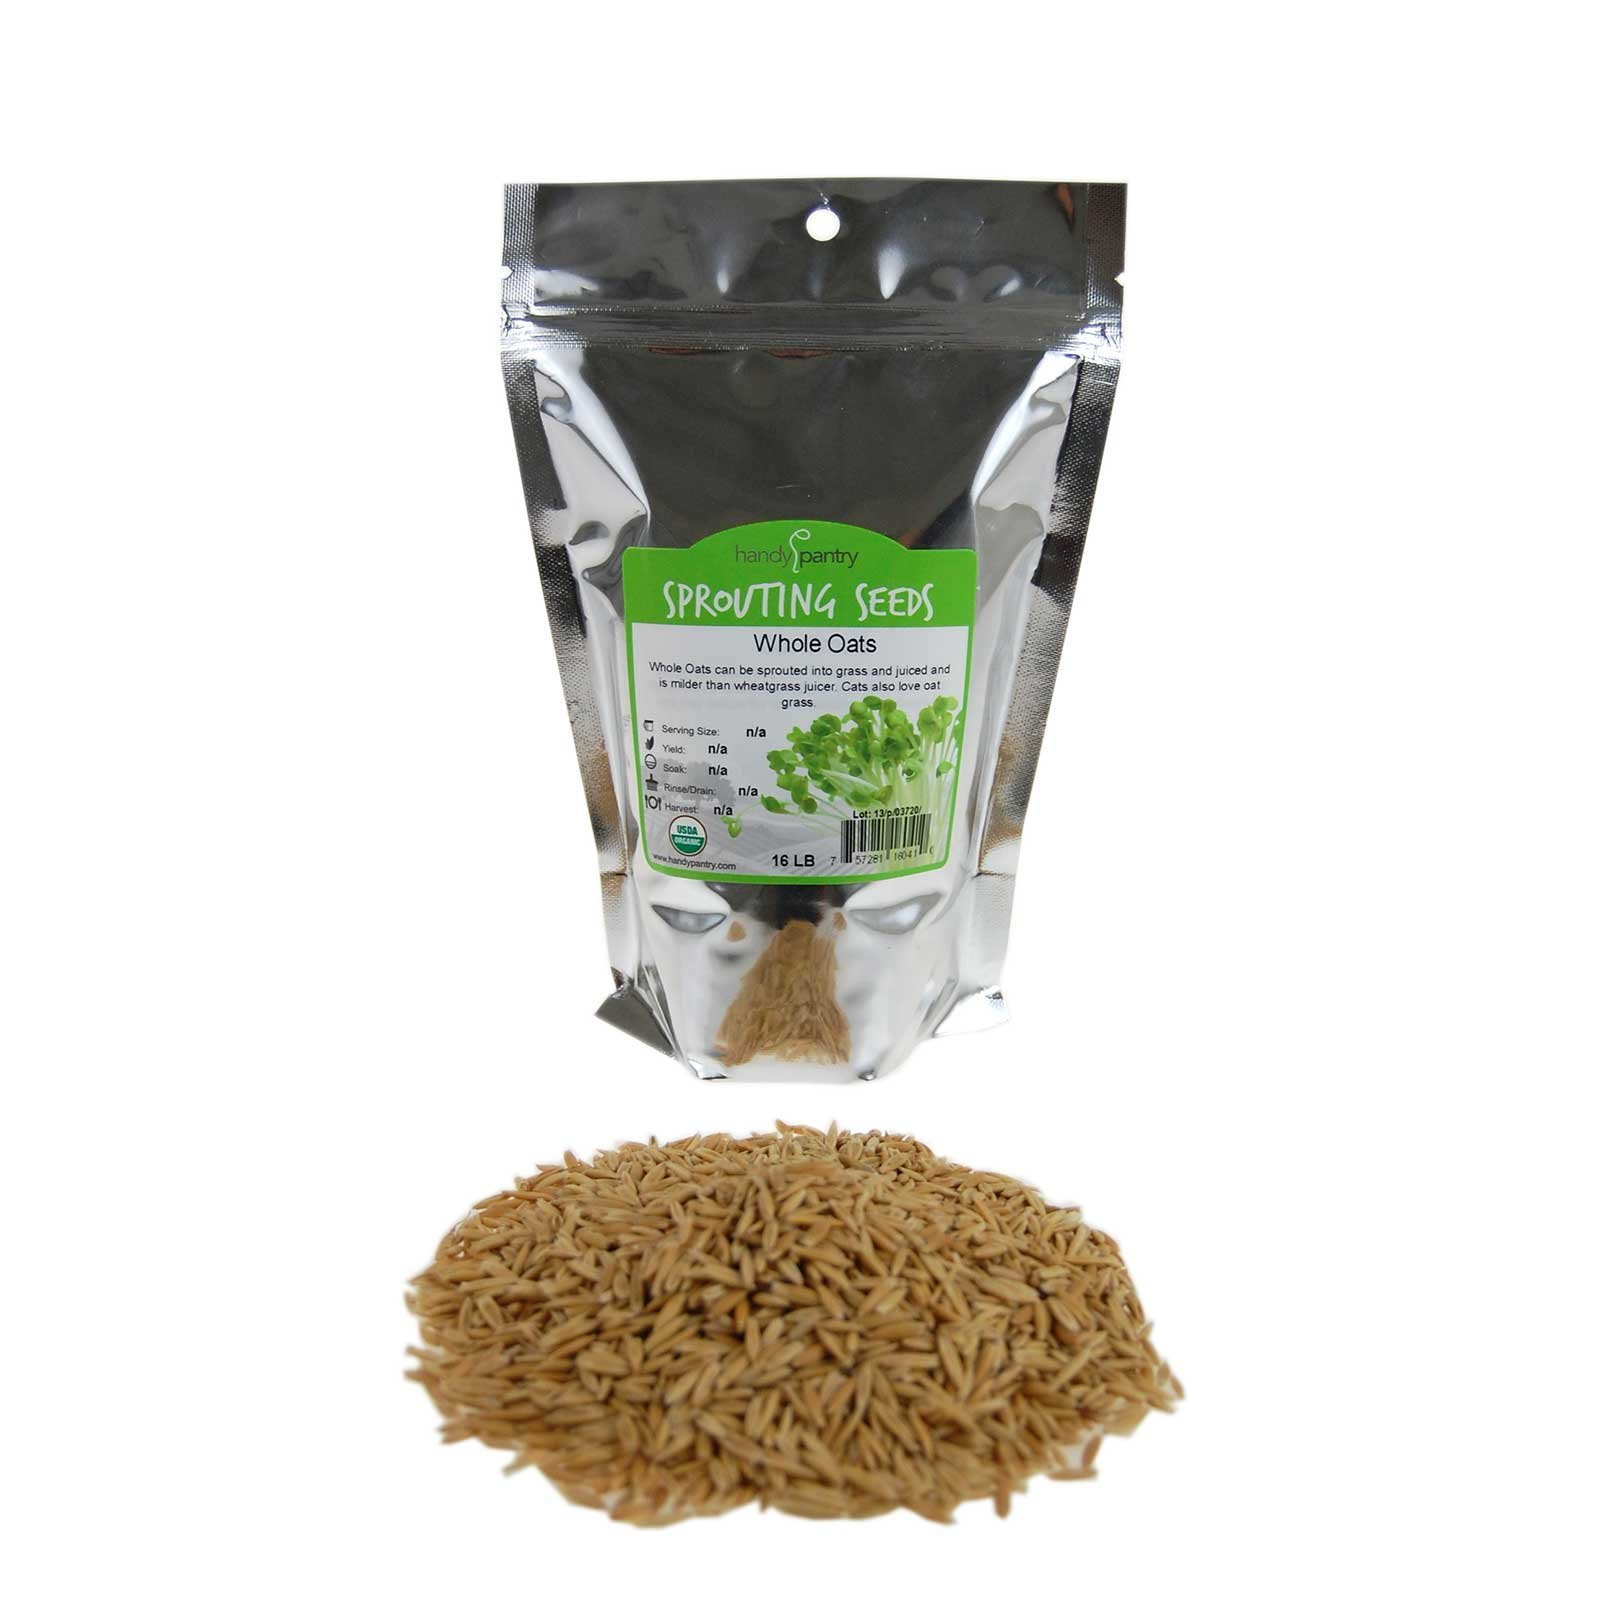 Organic Non-GMO Whole Oat Grain Seeds (With Husk Intact)- 1 Lb Re-Sealable Pouch- Oats Seed Grains, for Sprouting, Oat Grass, Animal Feed, Storage & More